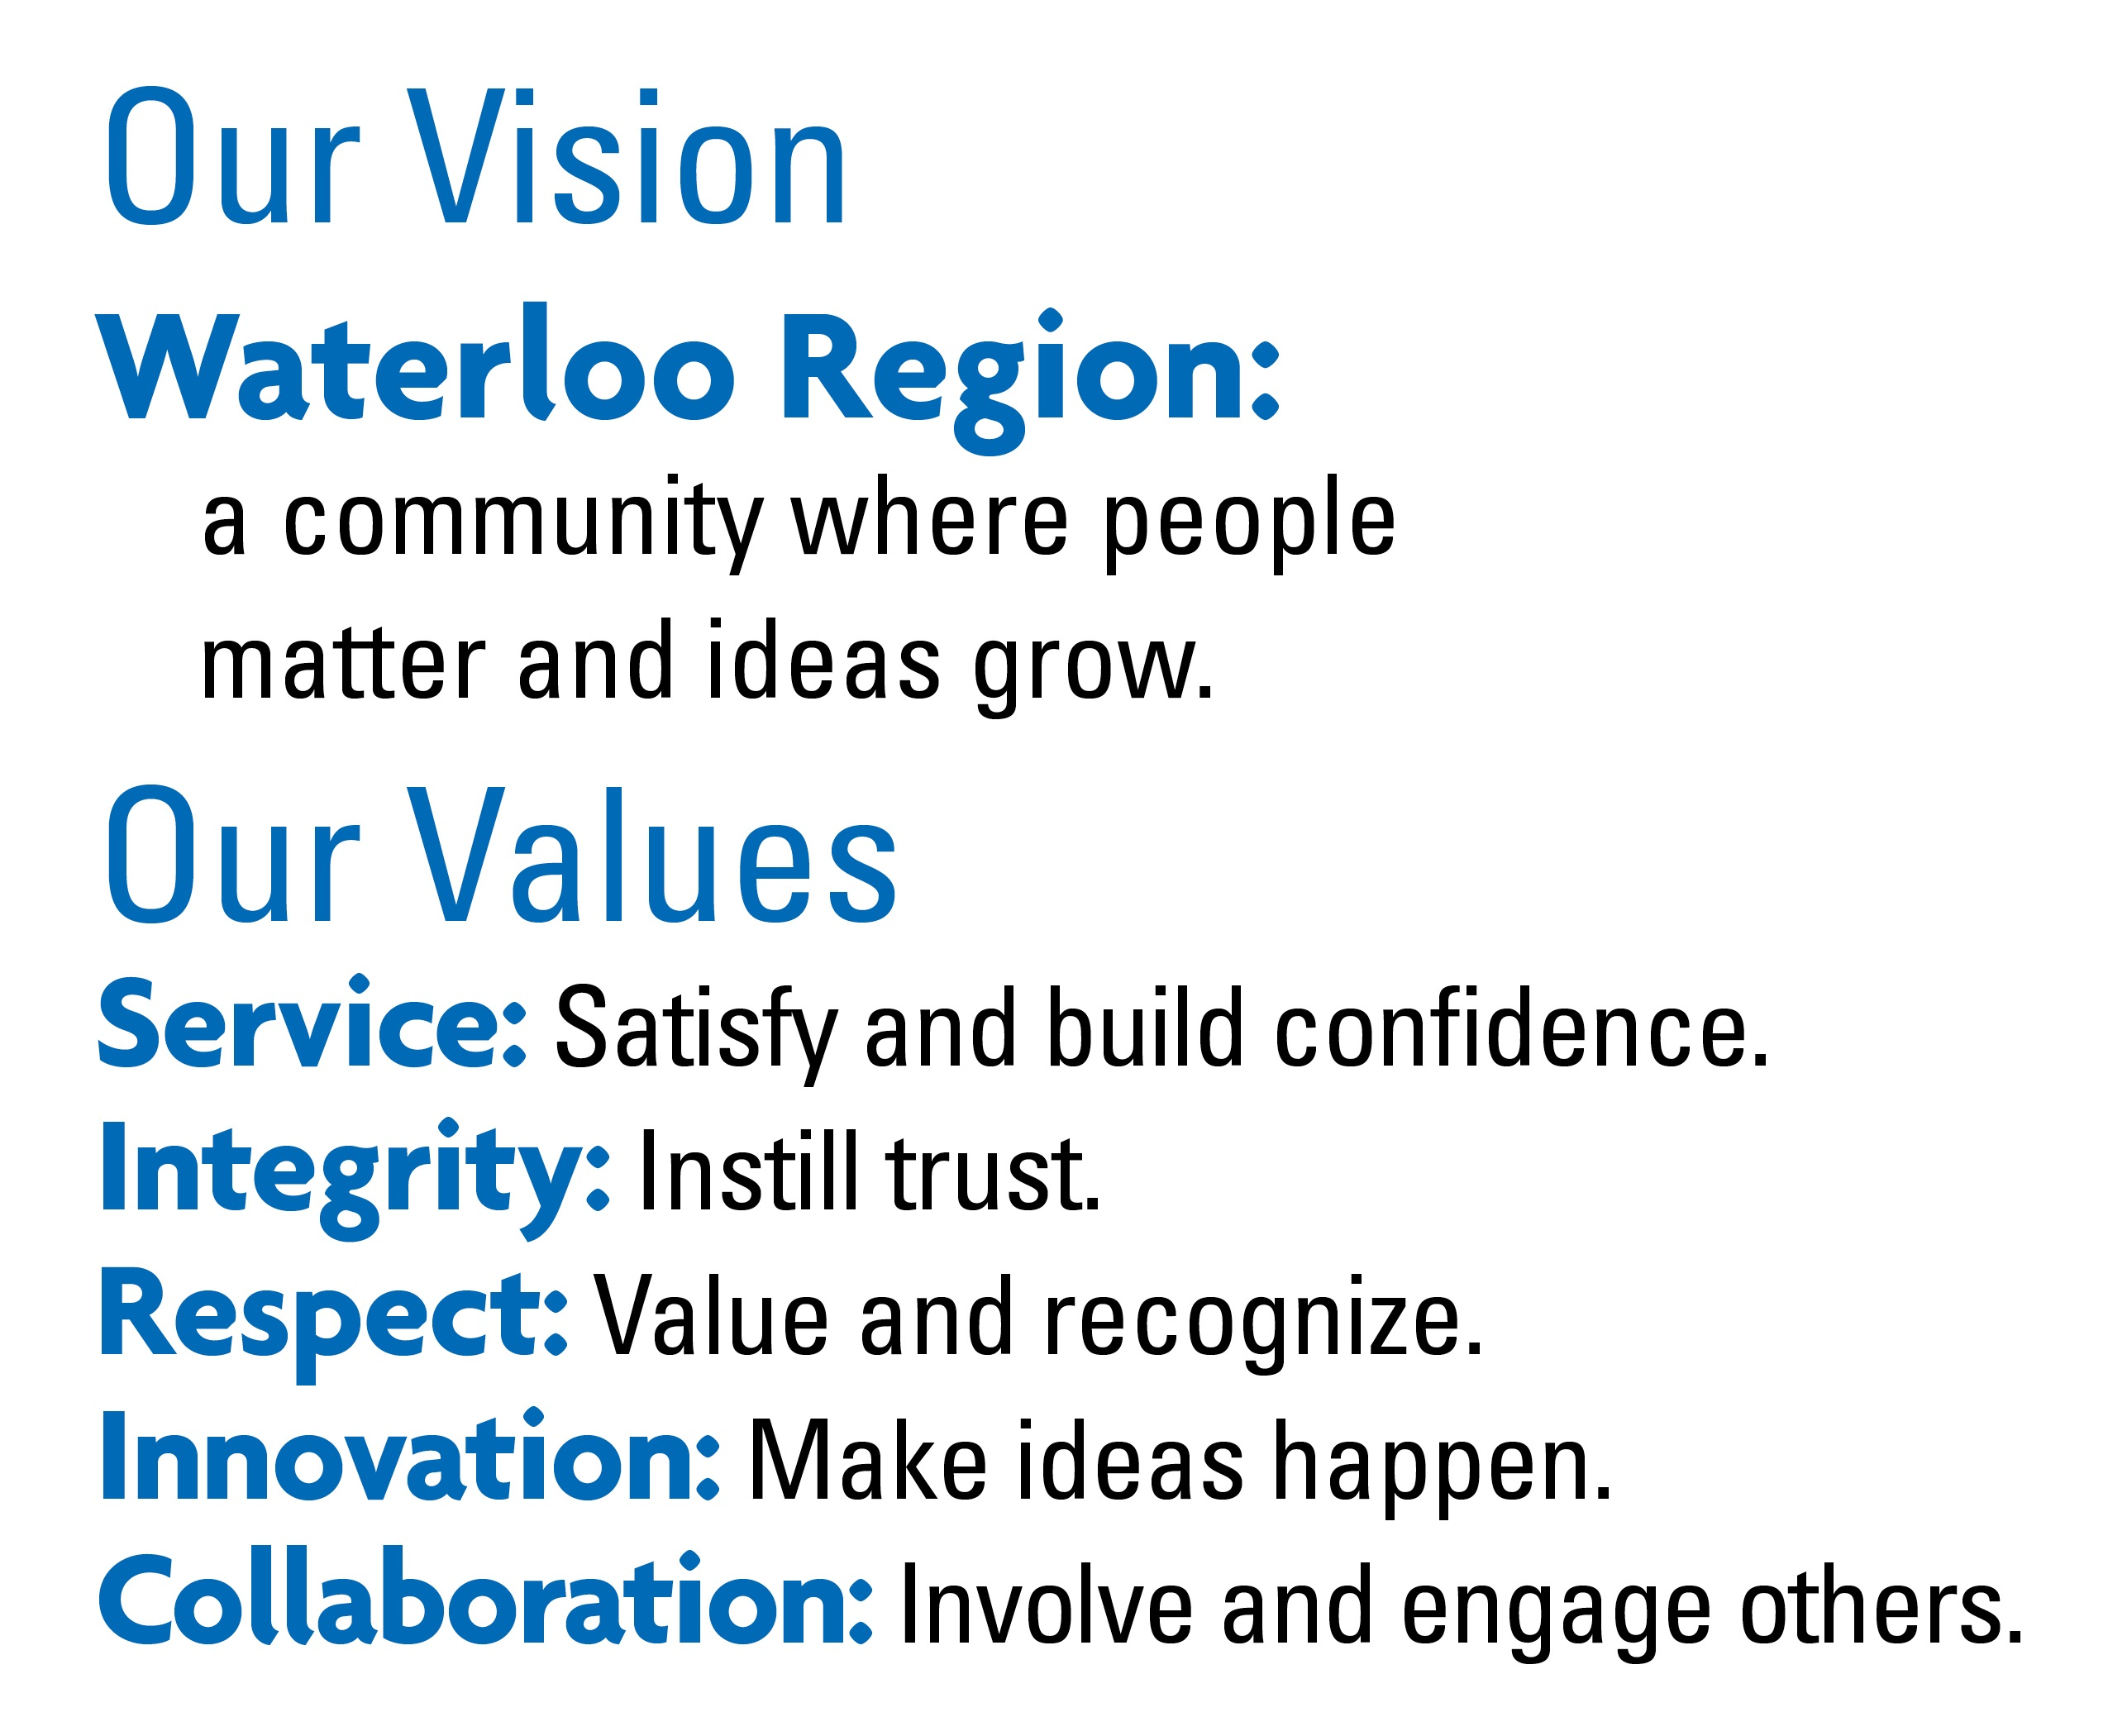 The Regions vision and values of service, integrity, respect, collaboration and innovation